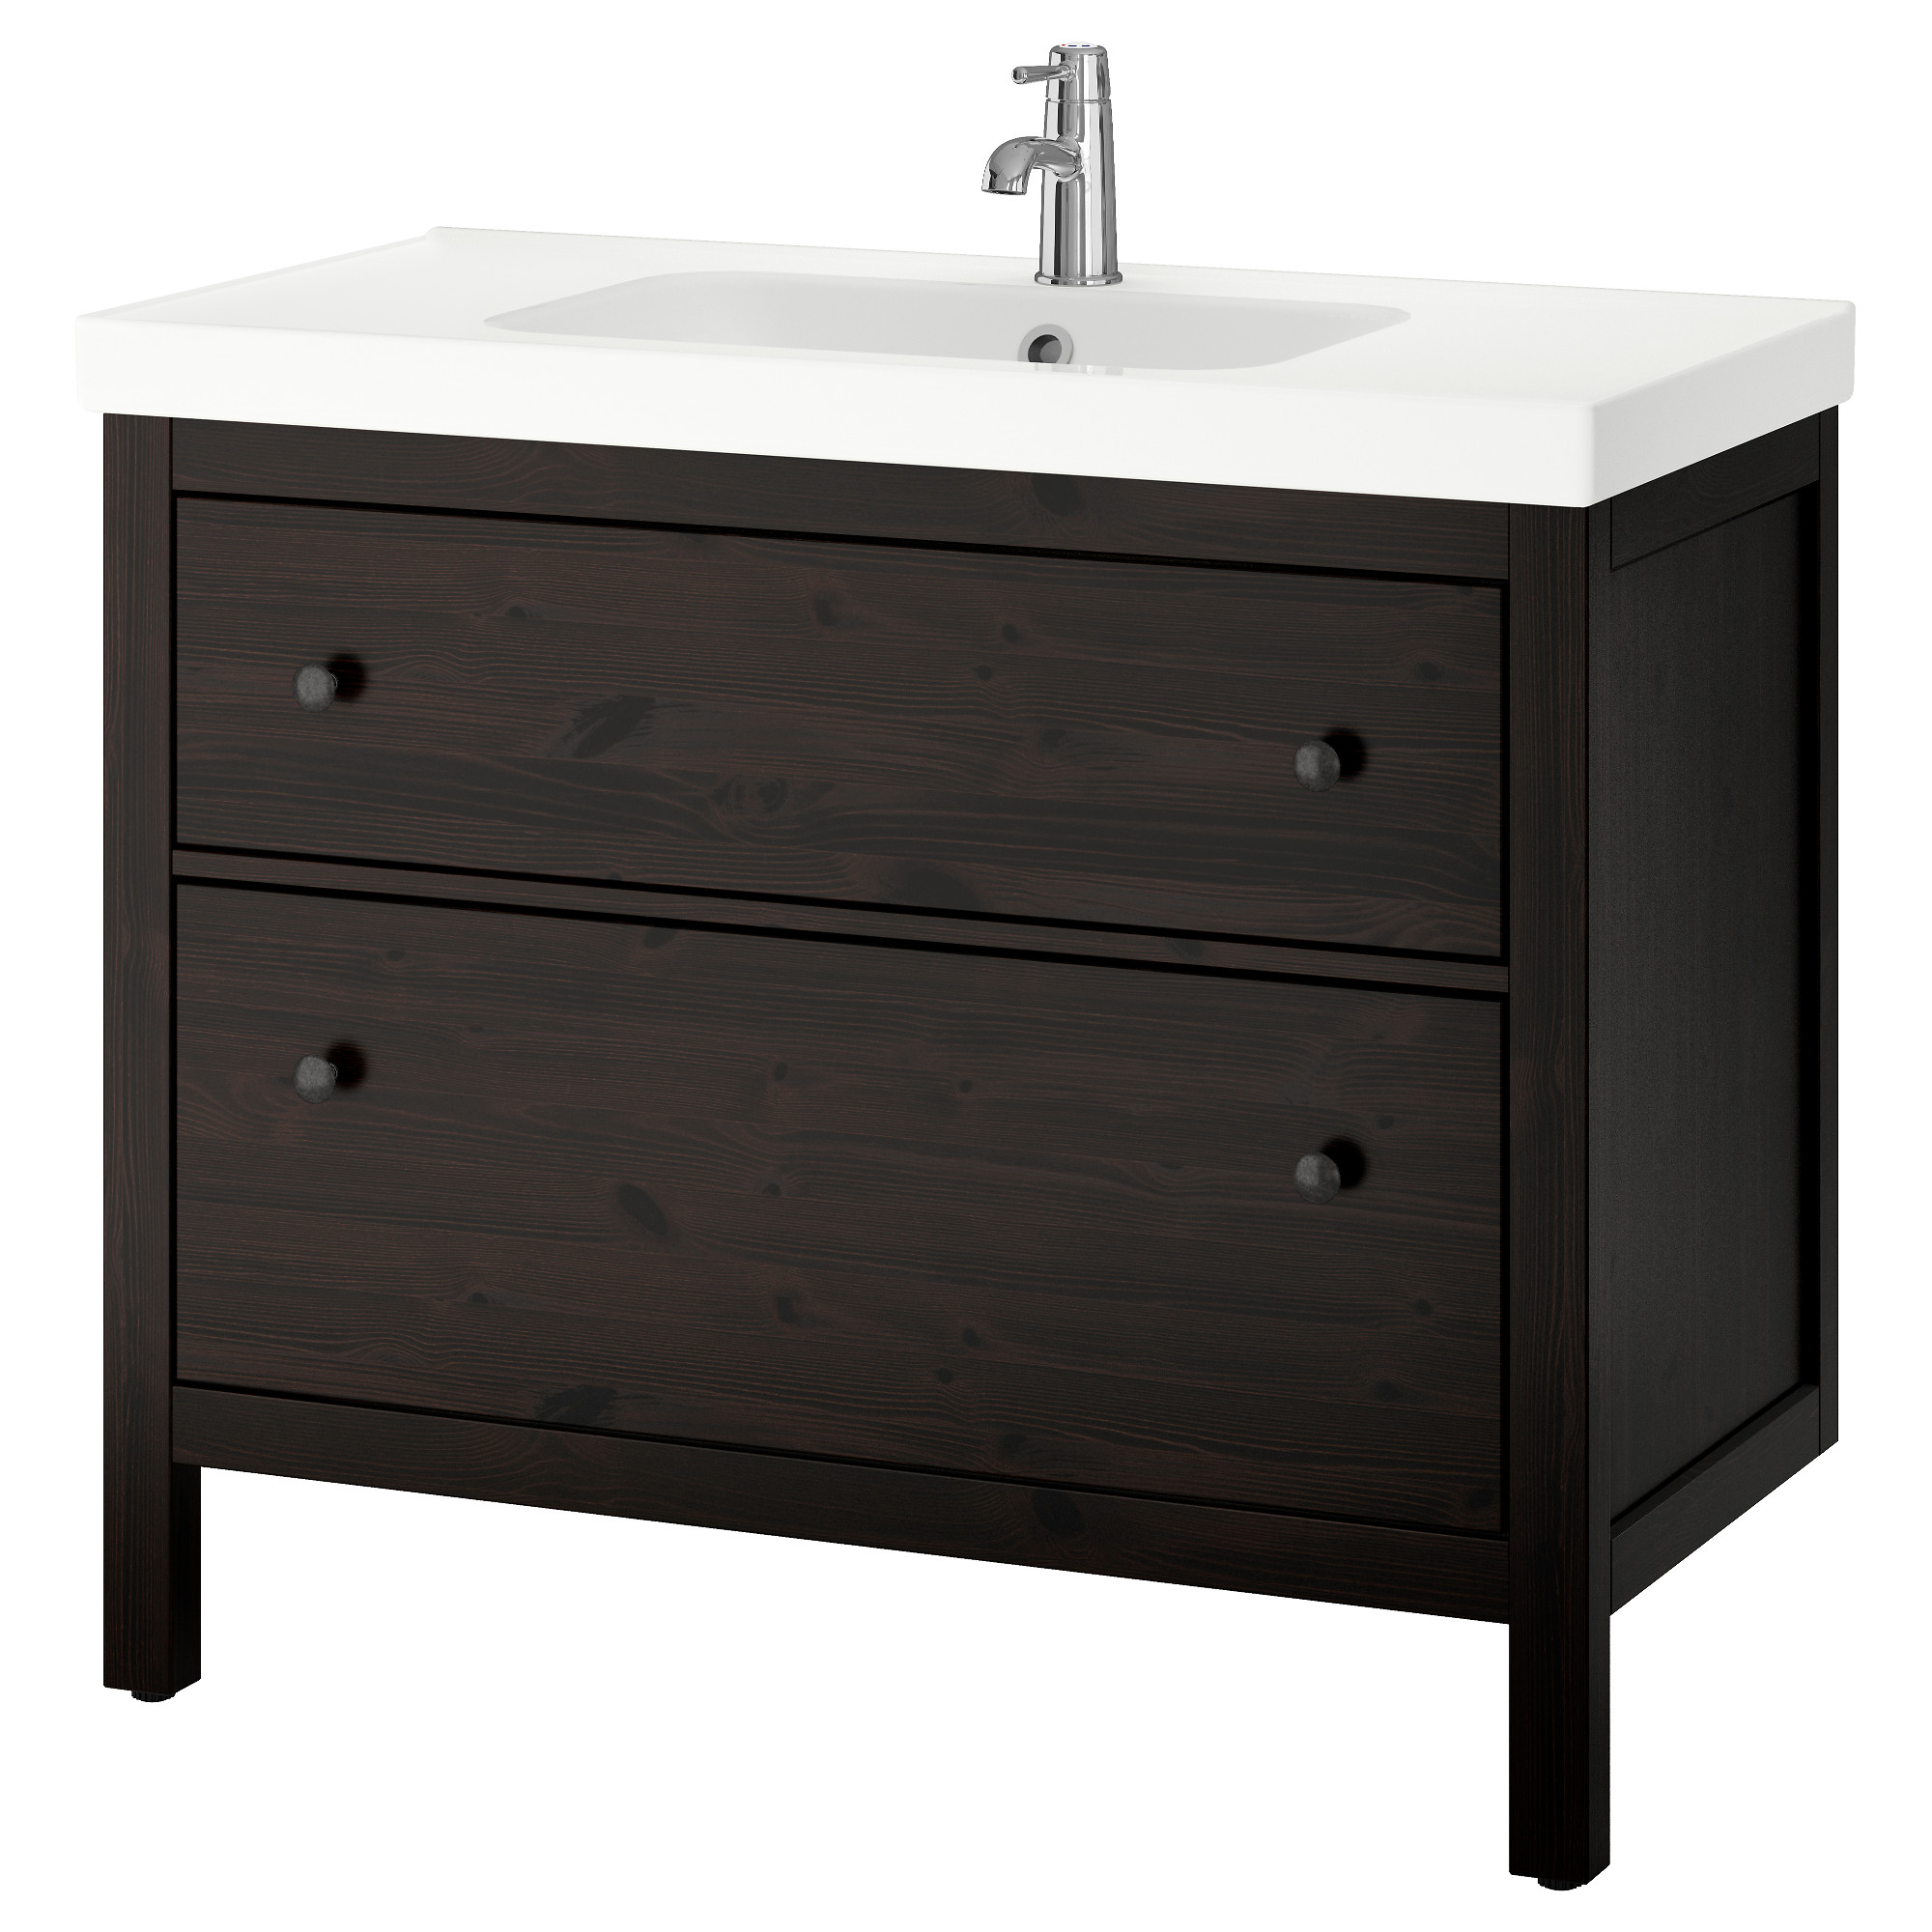 Bathroom Vanities 36 X 19 bathroom sink cabinets - ikea